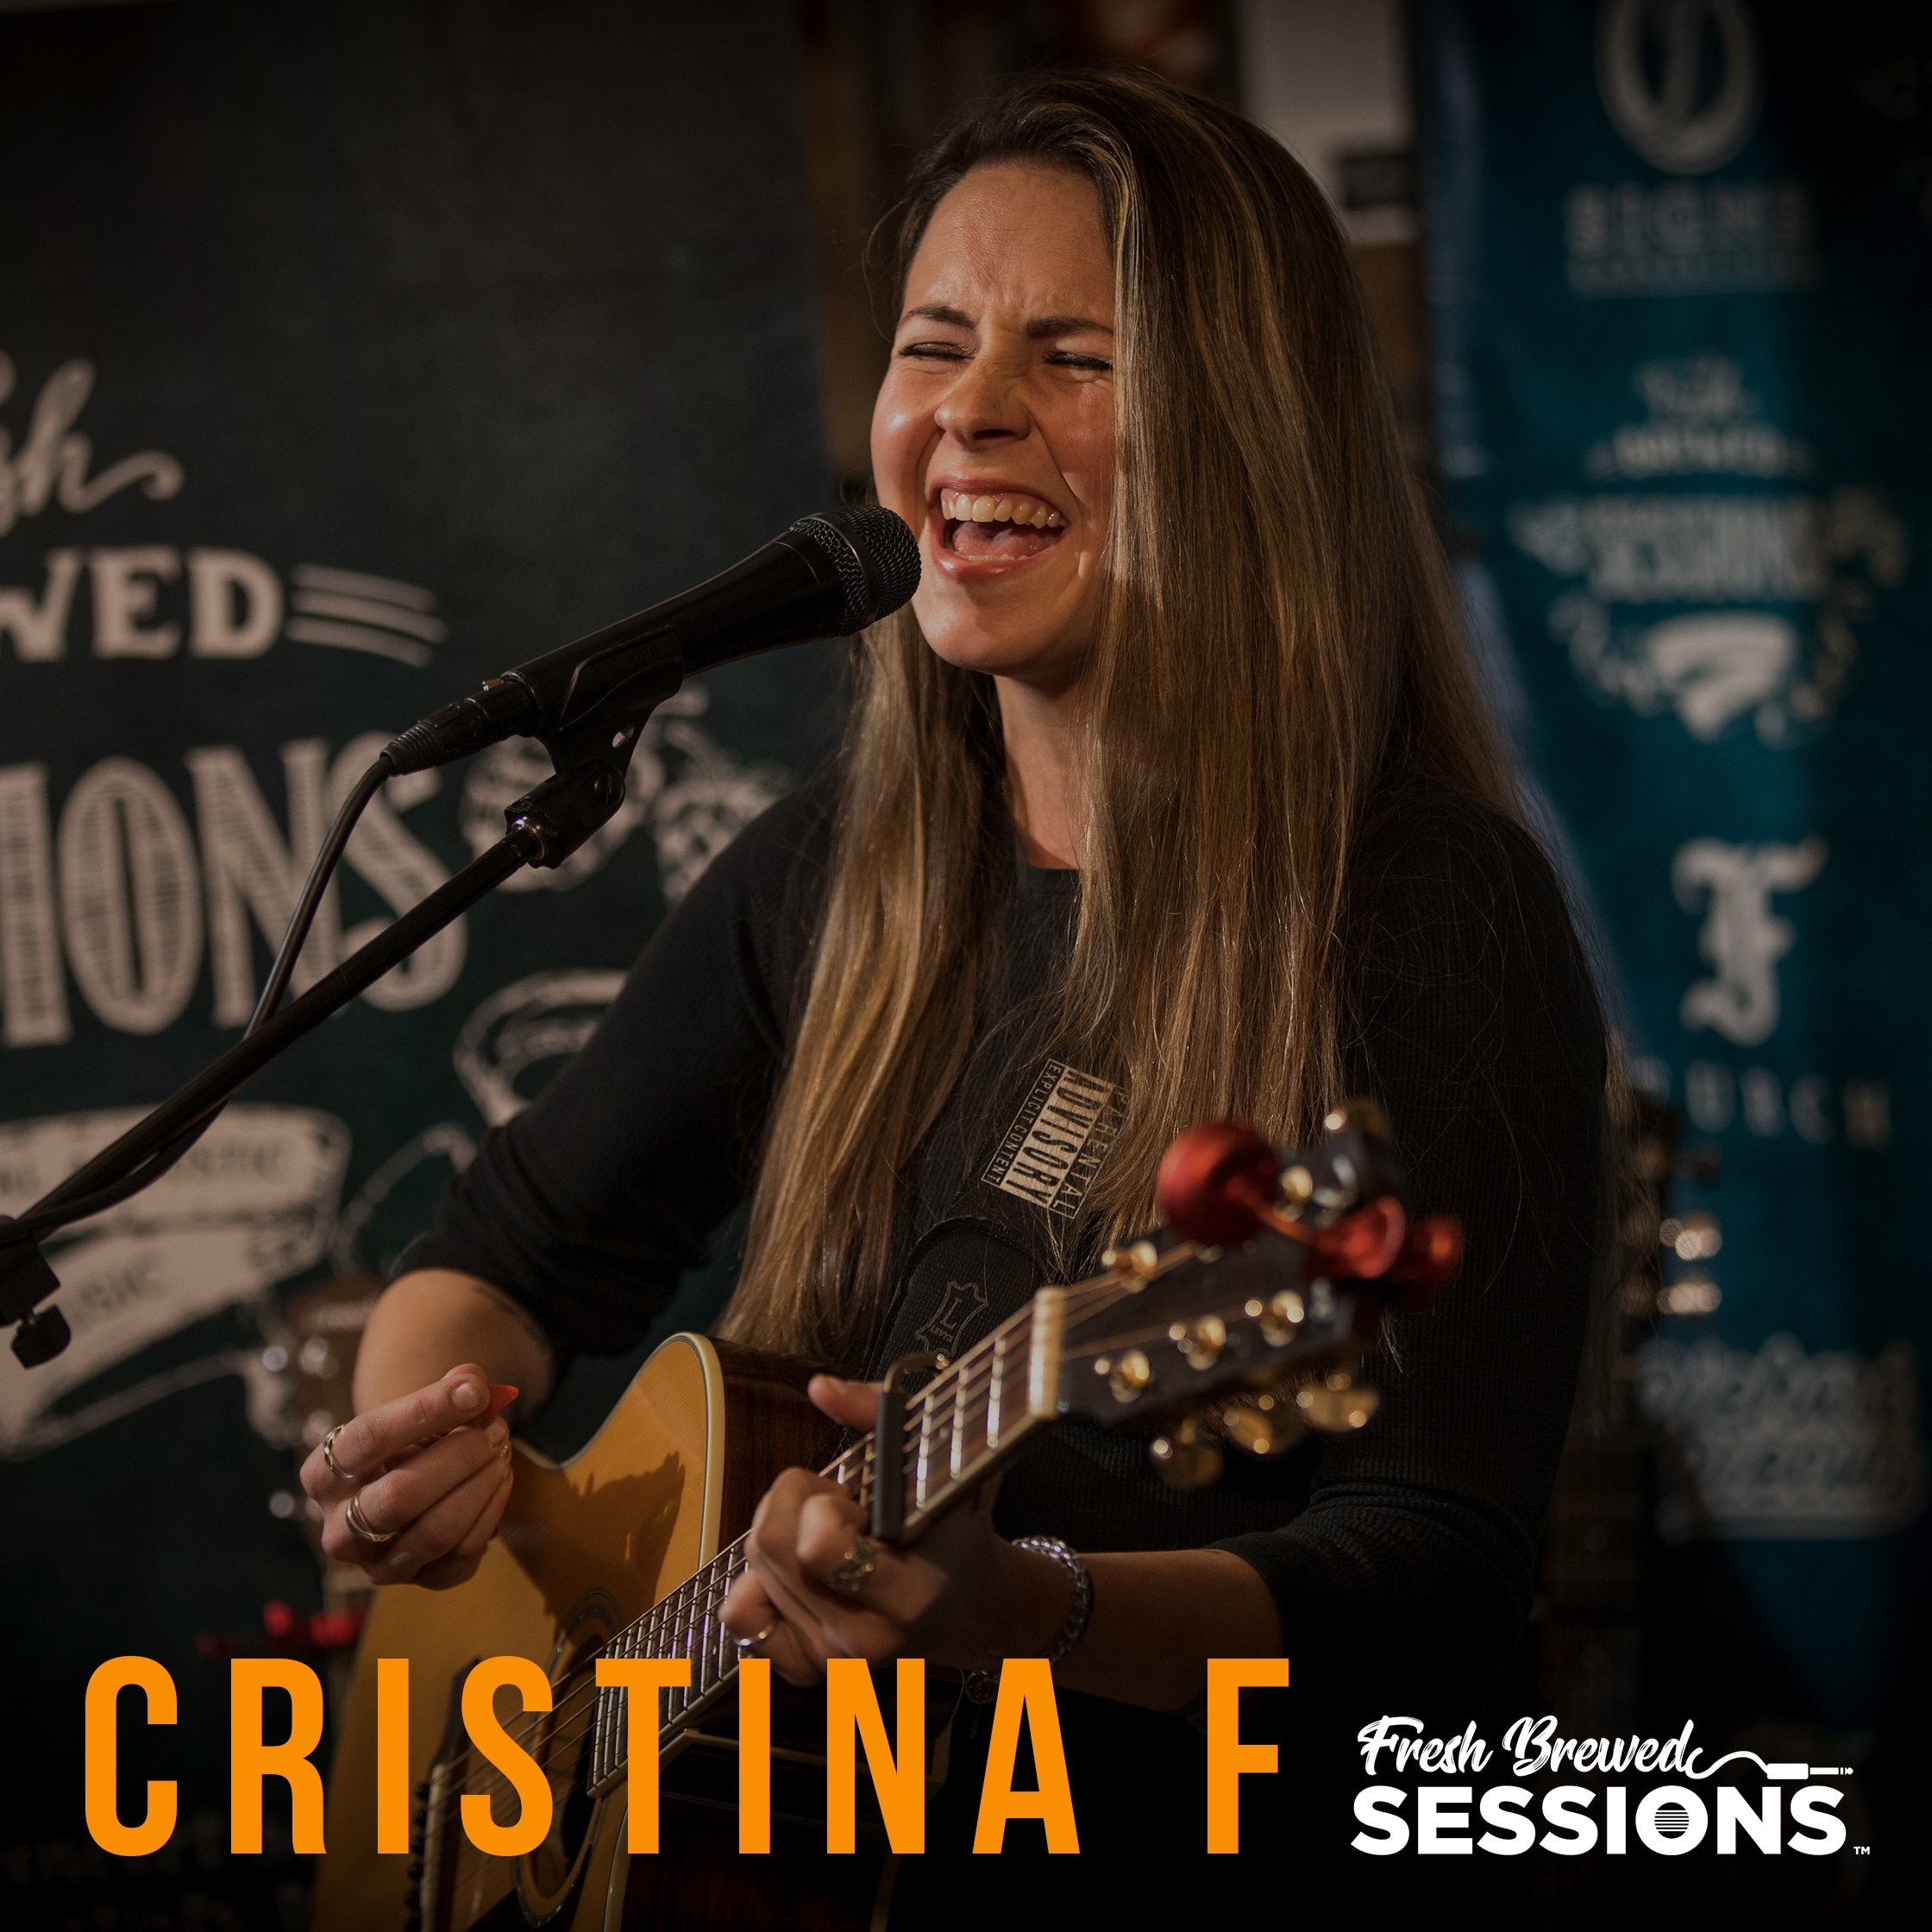 Fresh Brewed Sessions | Cristina F